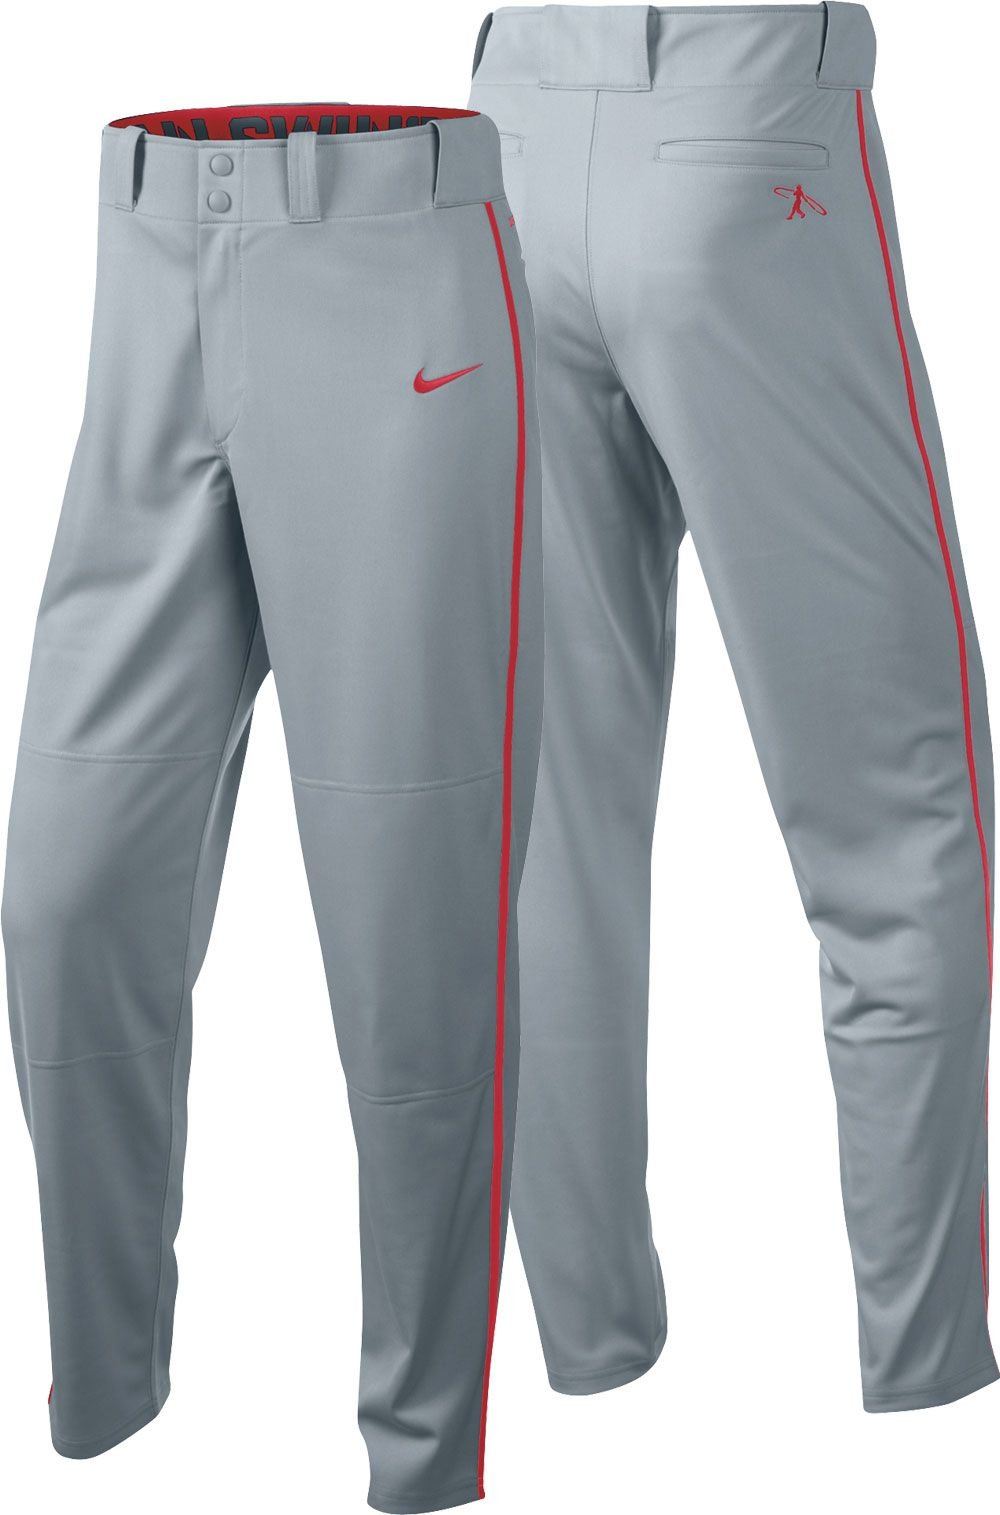 Nike Boys Swingman Dri-FIT Piped Baseball Pants (Grey/Red, Large) by Nike